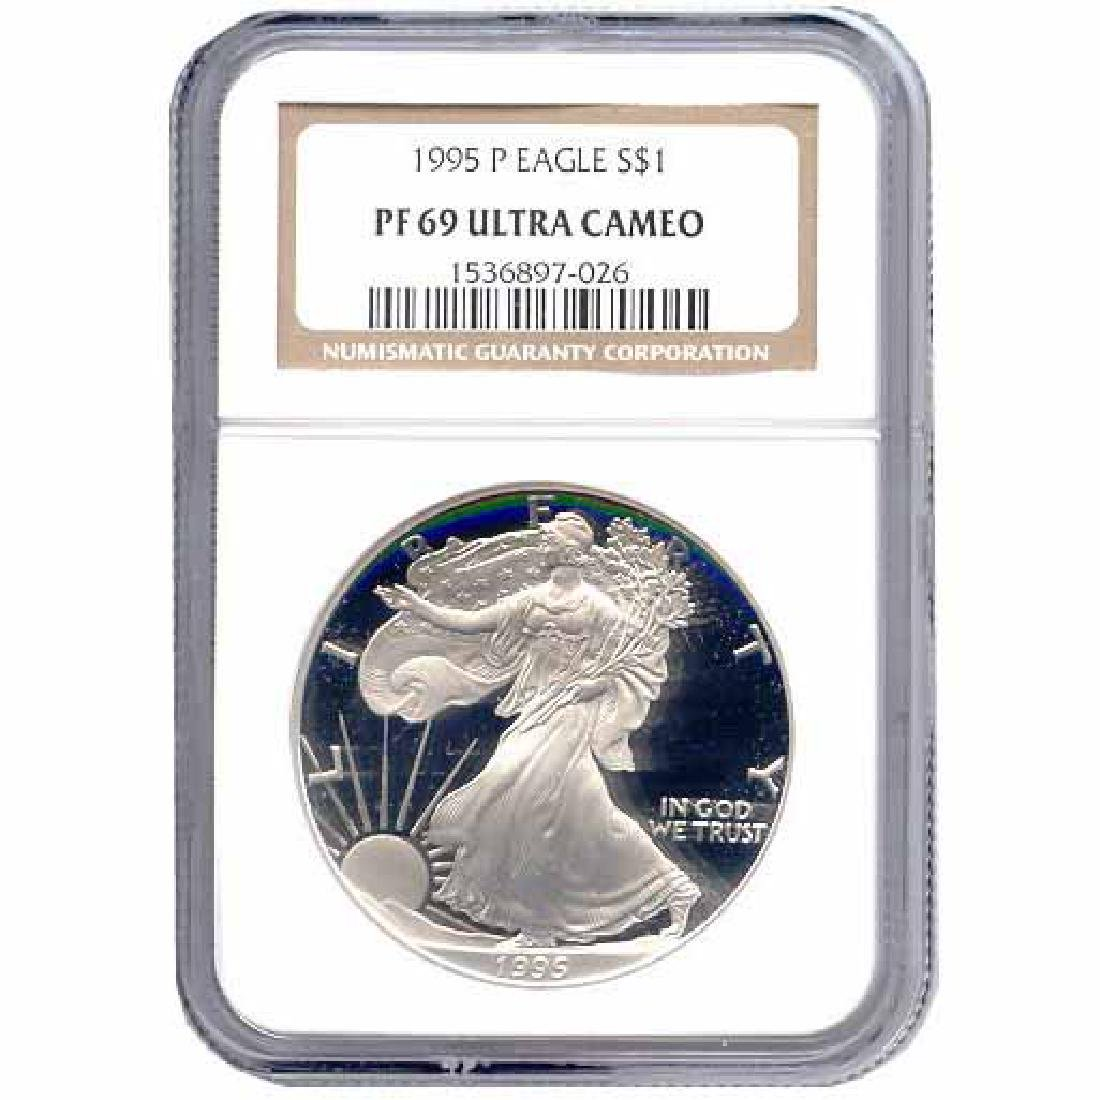 Certified Proof Silver Eagle PF69 1995